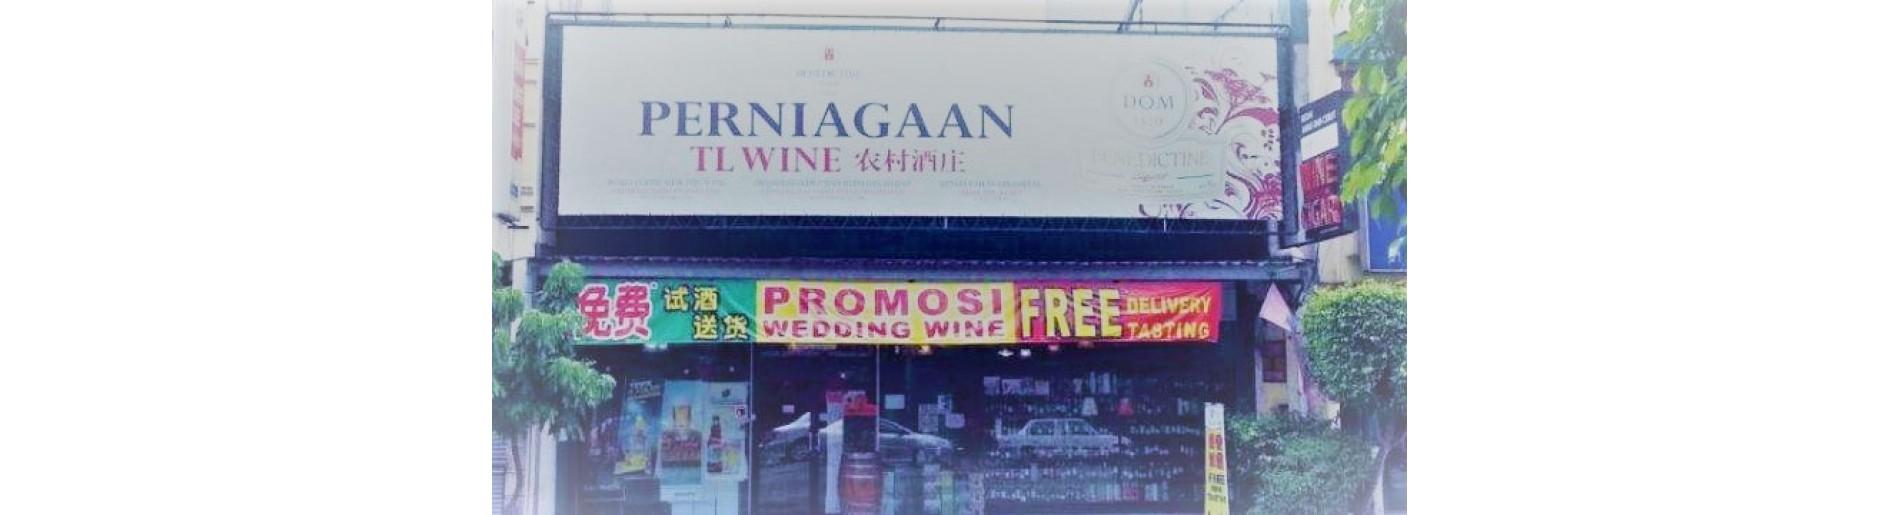 TL wine shop